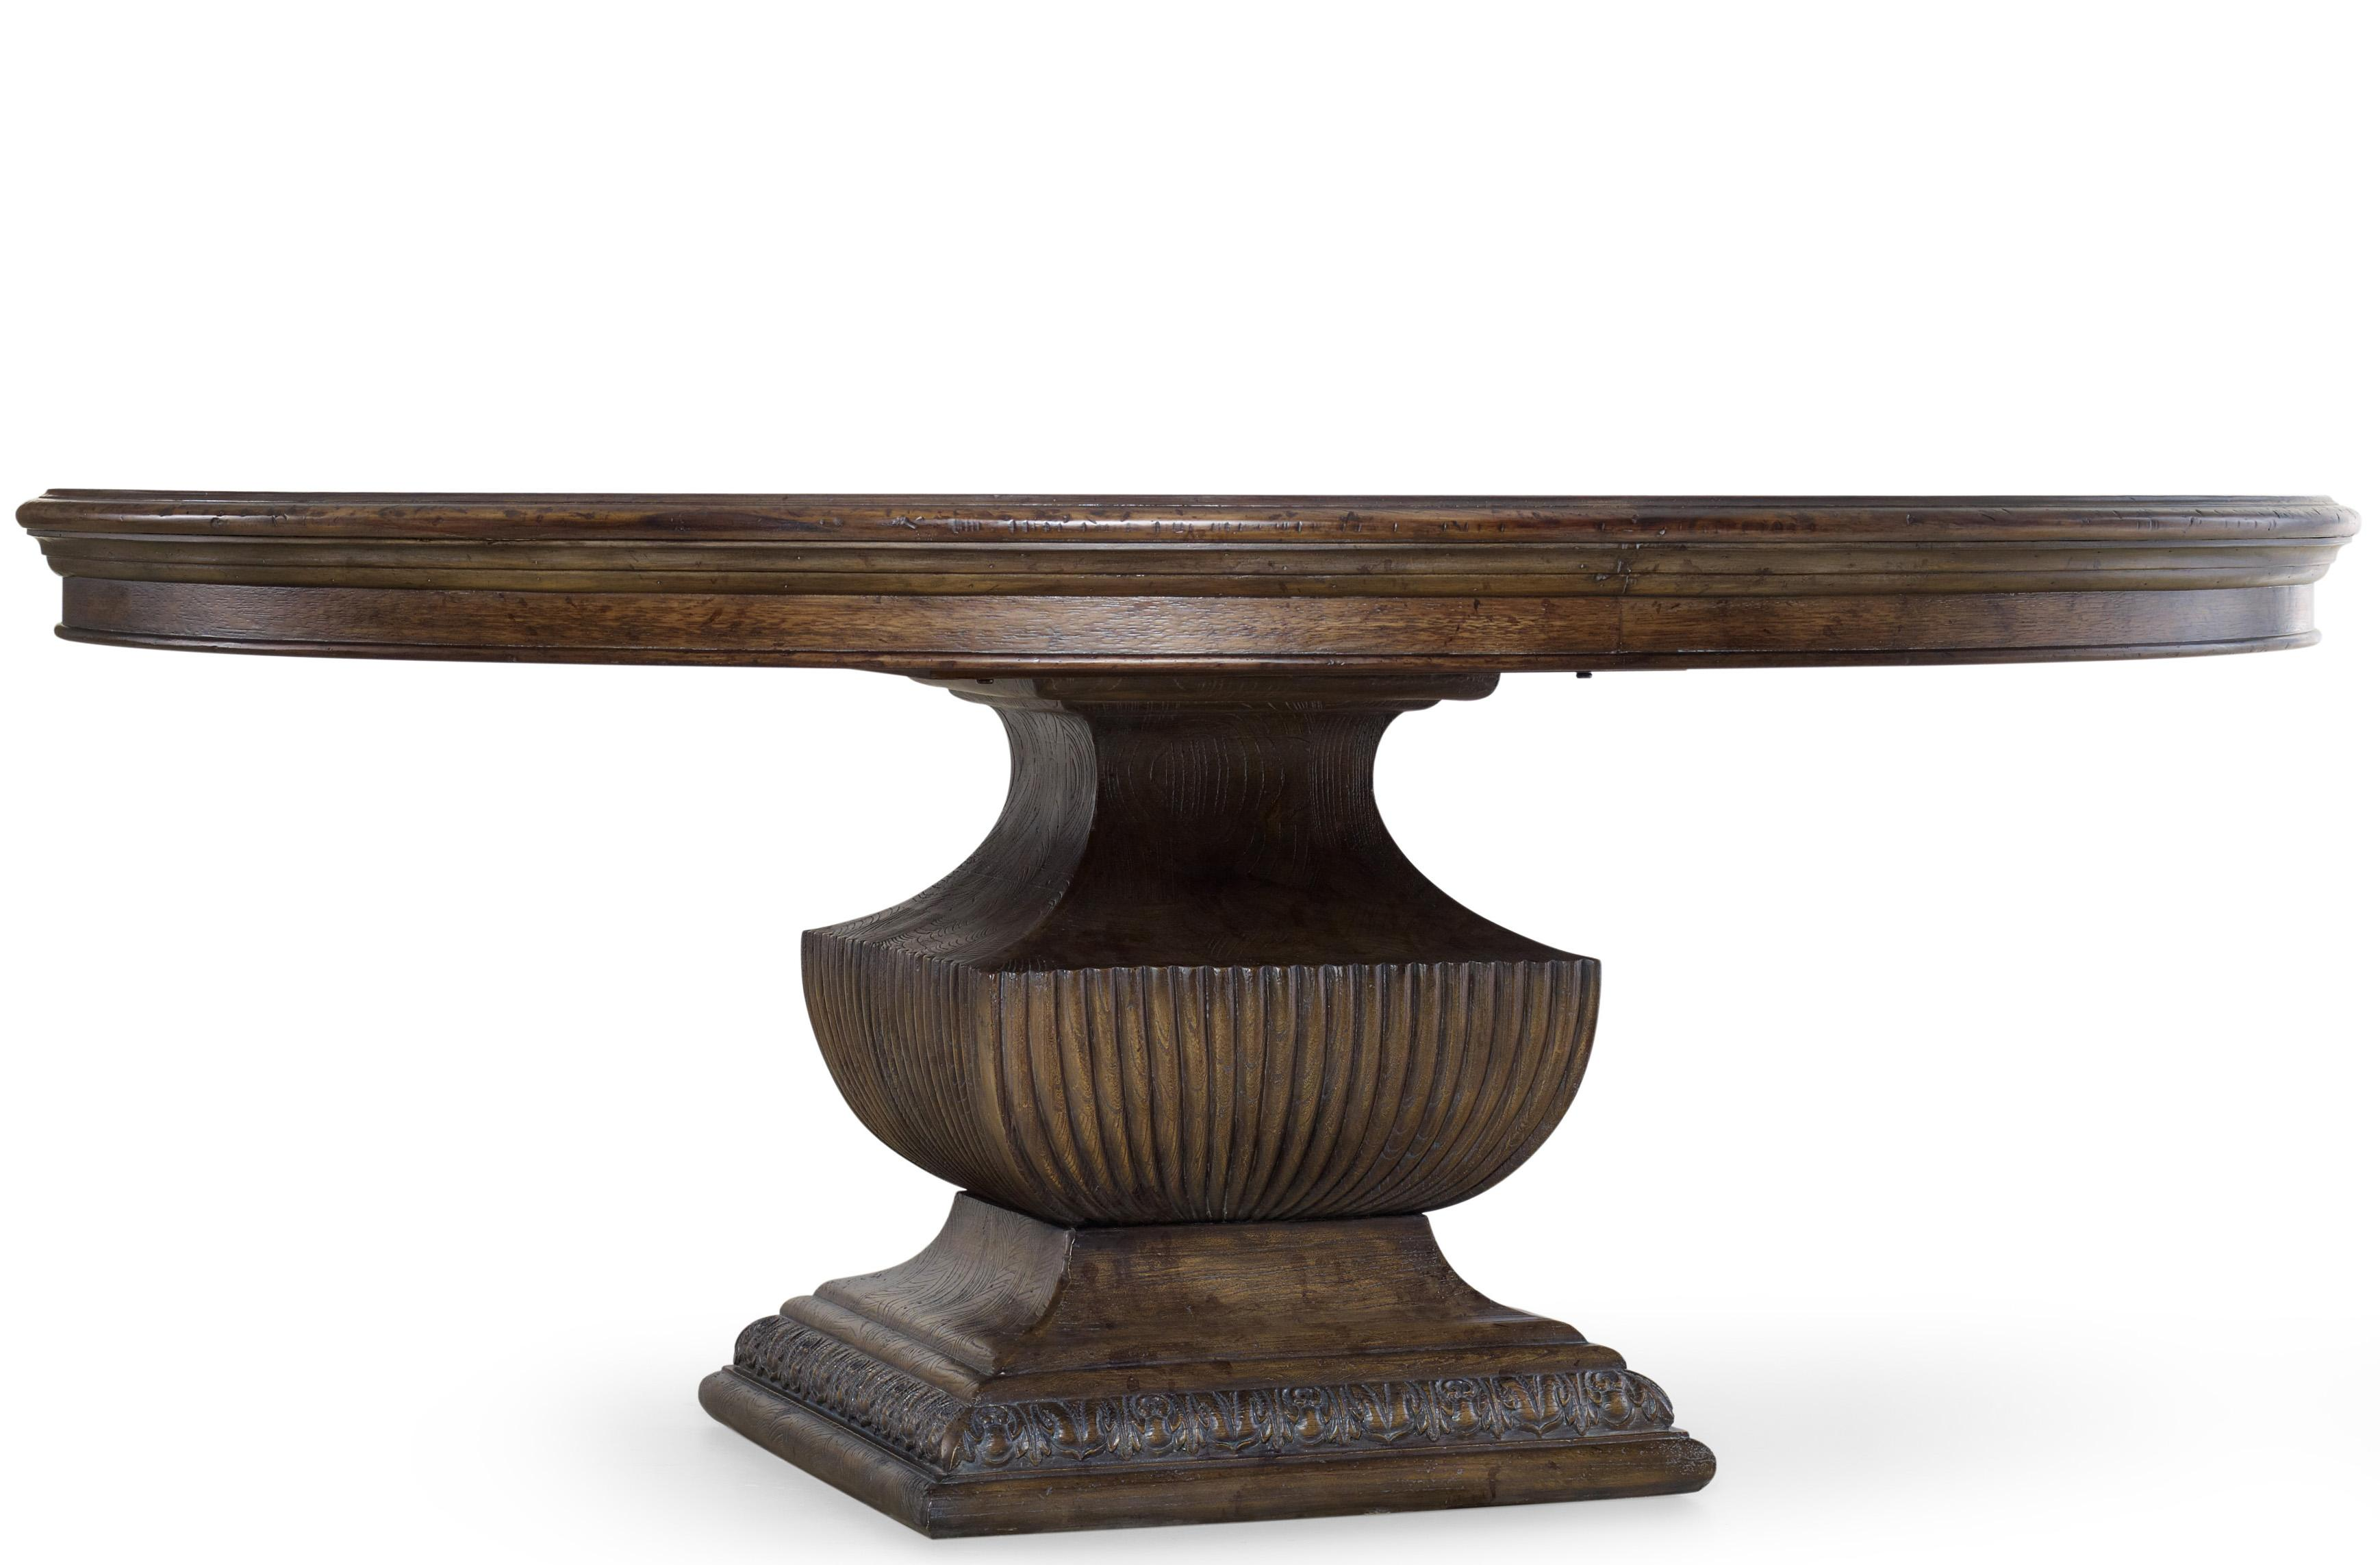 by artisan signal base q home table product inch x hills dining benchwright round rustic today free shipping set garden overstock pedestal inspire